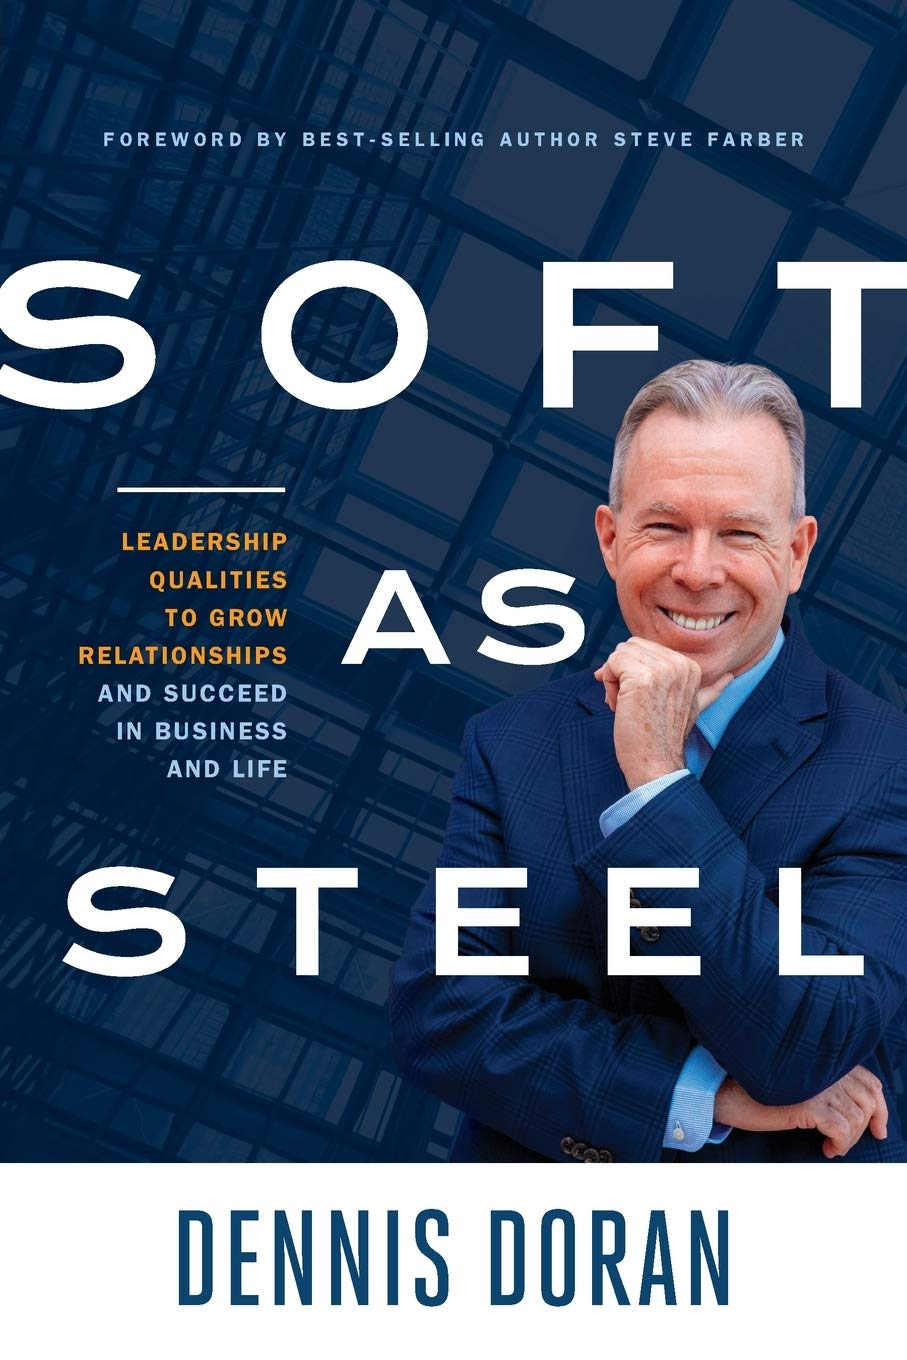 Image OfSoft As Steel: Leadership Qualities To Grow Relationships And Succeed In Business And Life